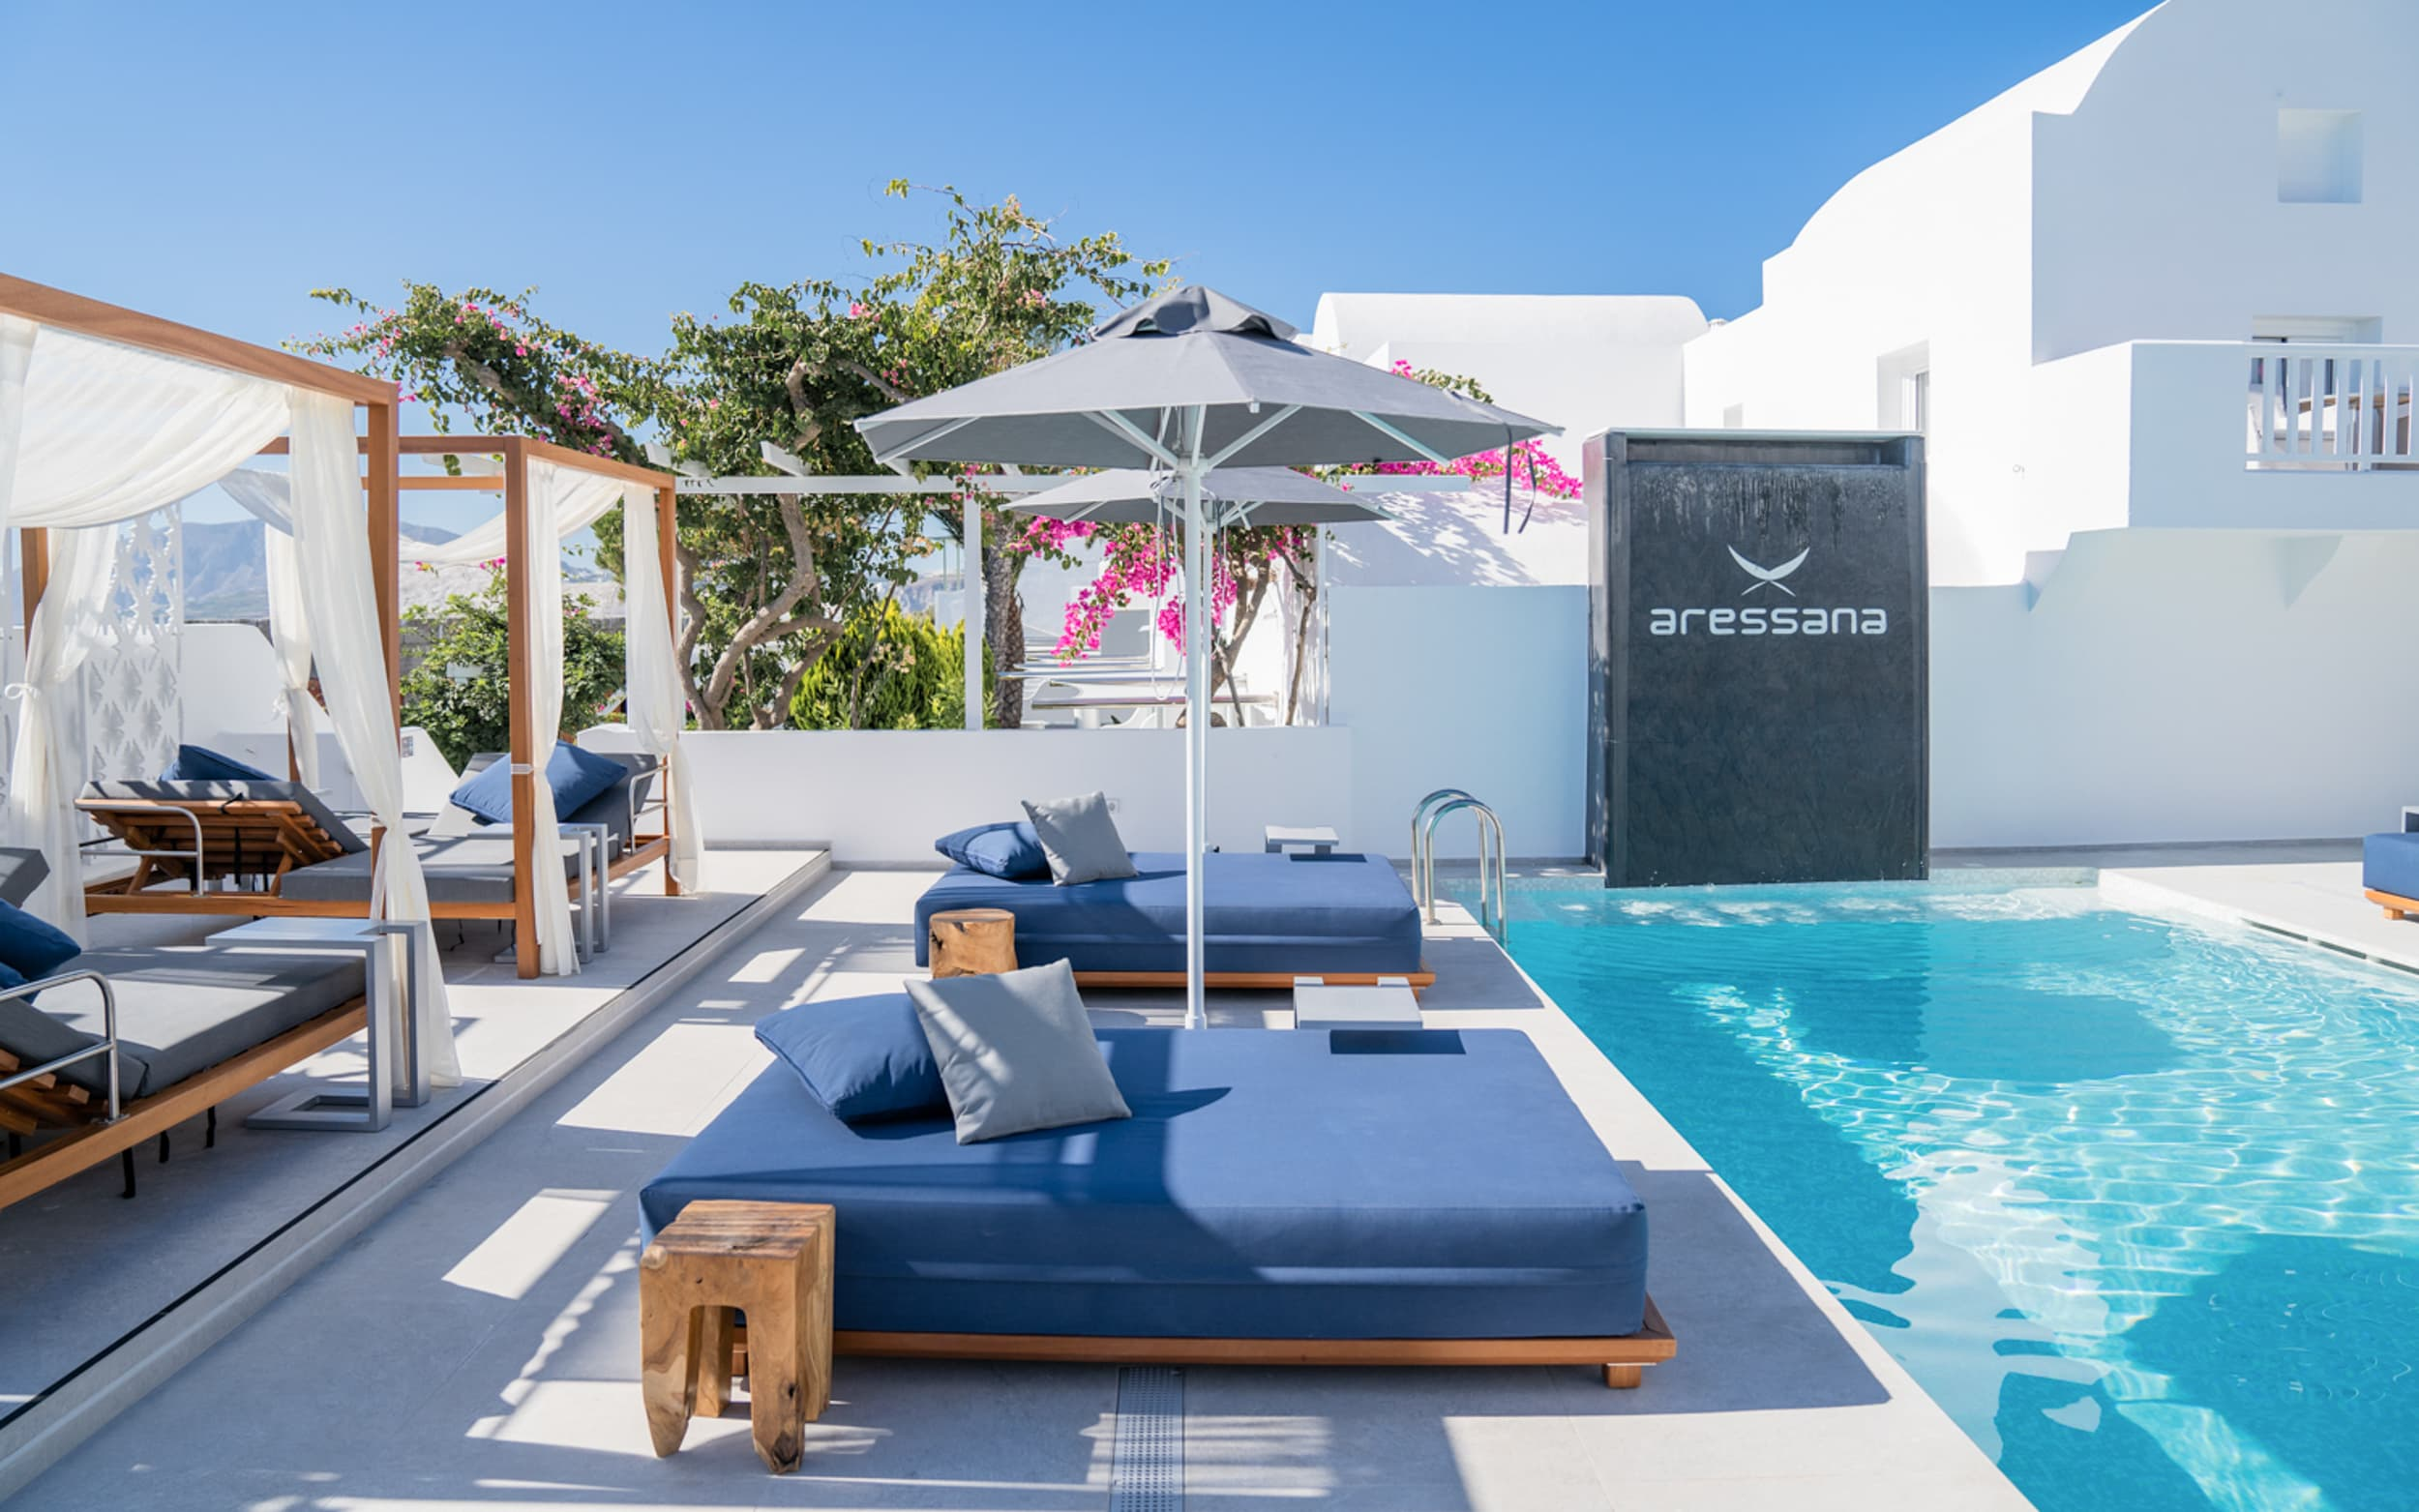 Days & Nights By The Aressana Swimming Pool